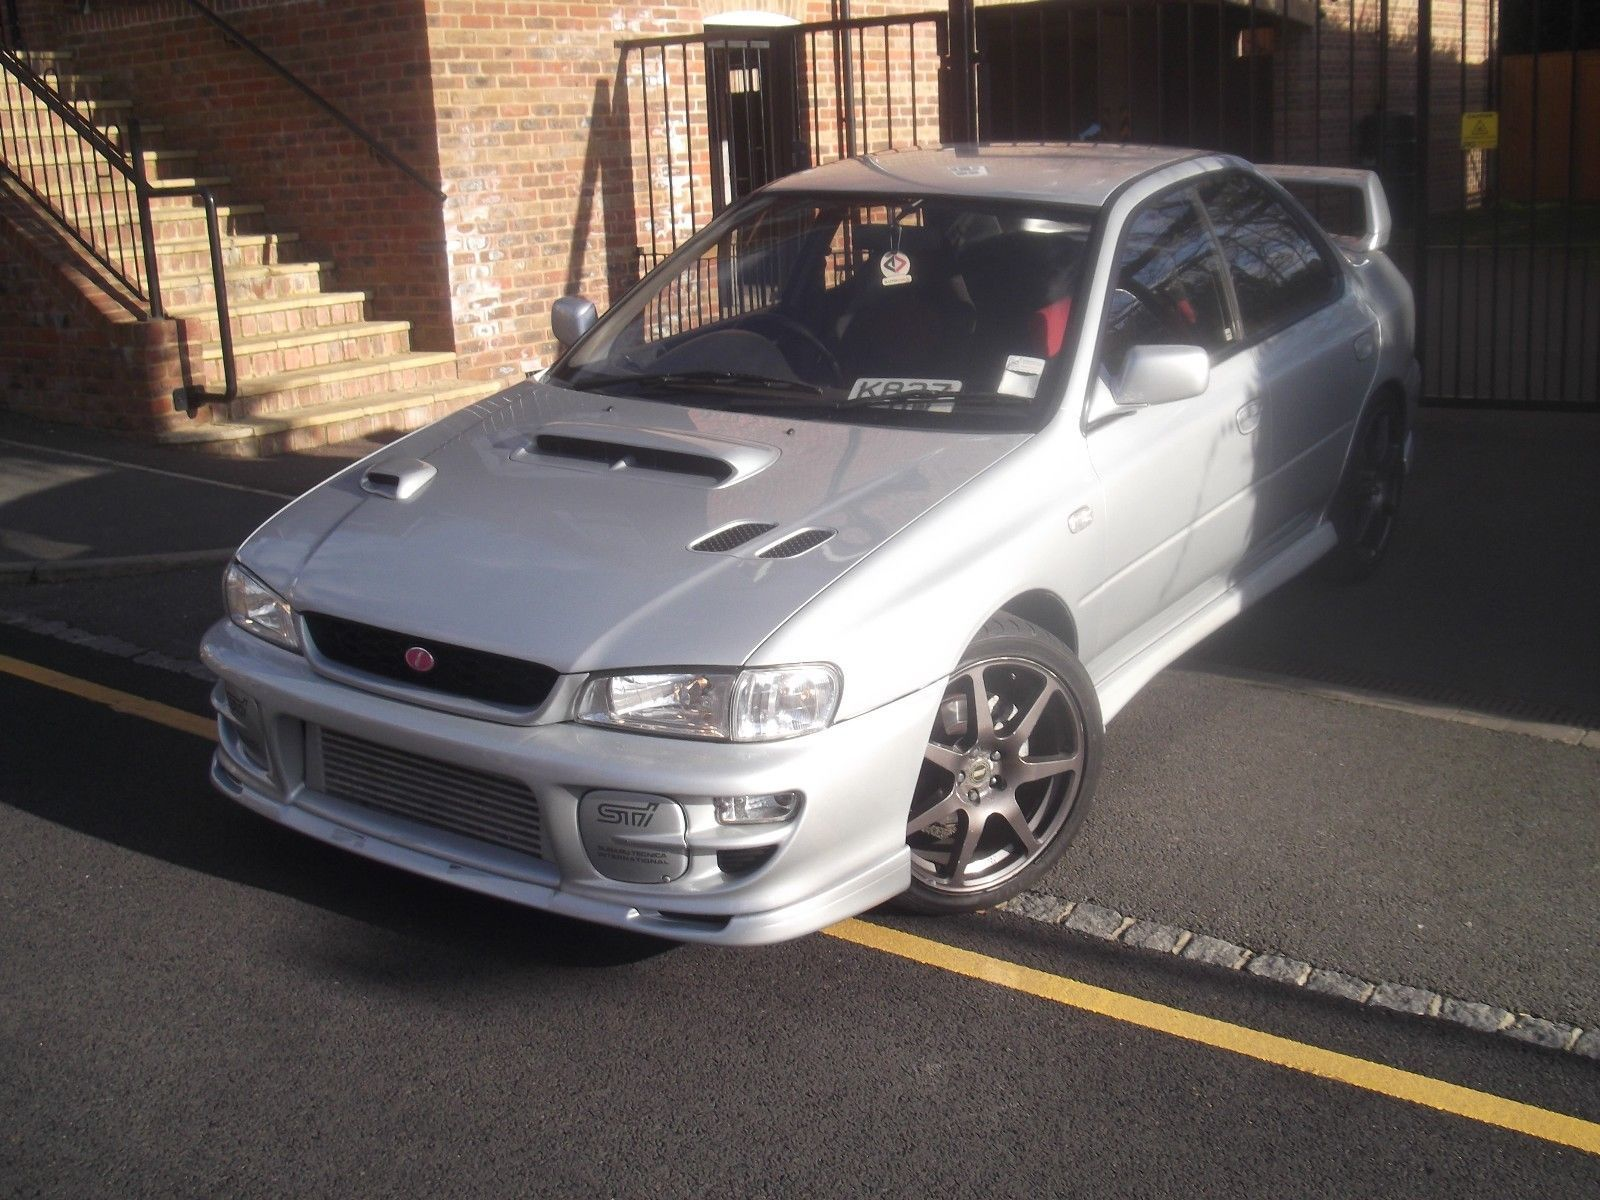 the link to see more pics and details of this 1993 subaru Impreza 2 0 Wrx Version 1 Td05 Jap Import Fmic Hks Modified